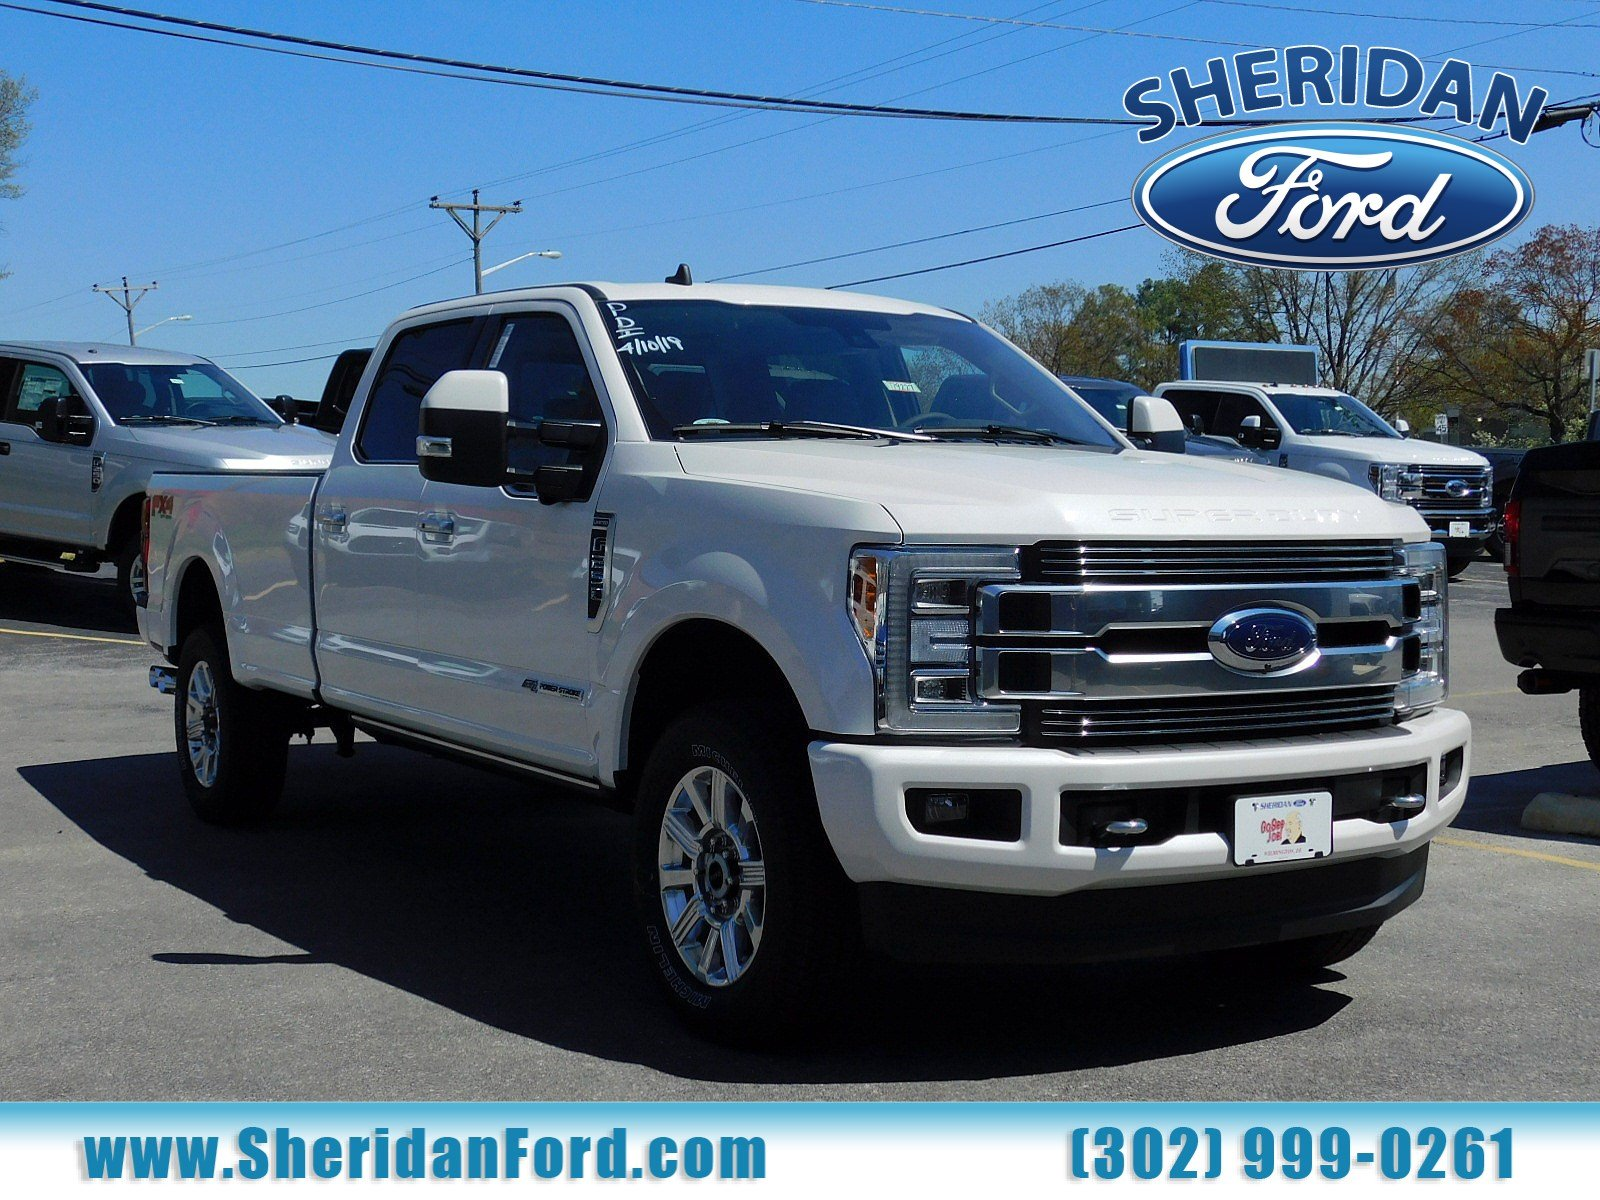 New 2019 Ford Super Duty F-250 SRW Limited